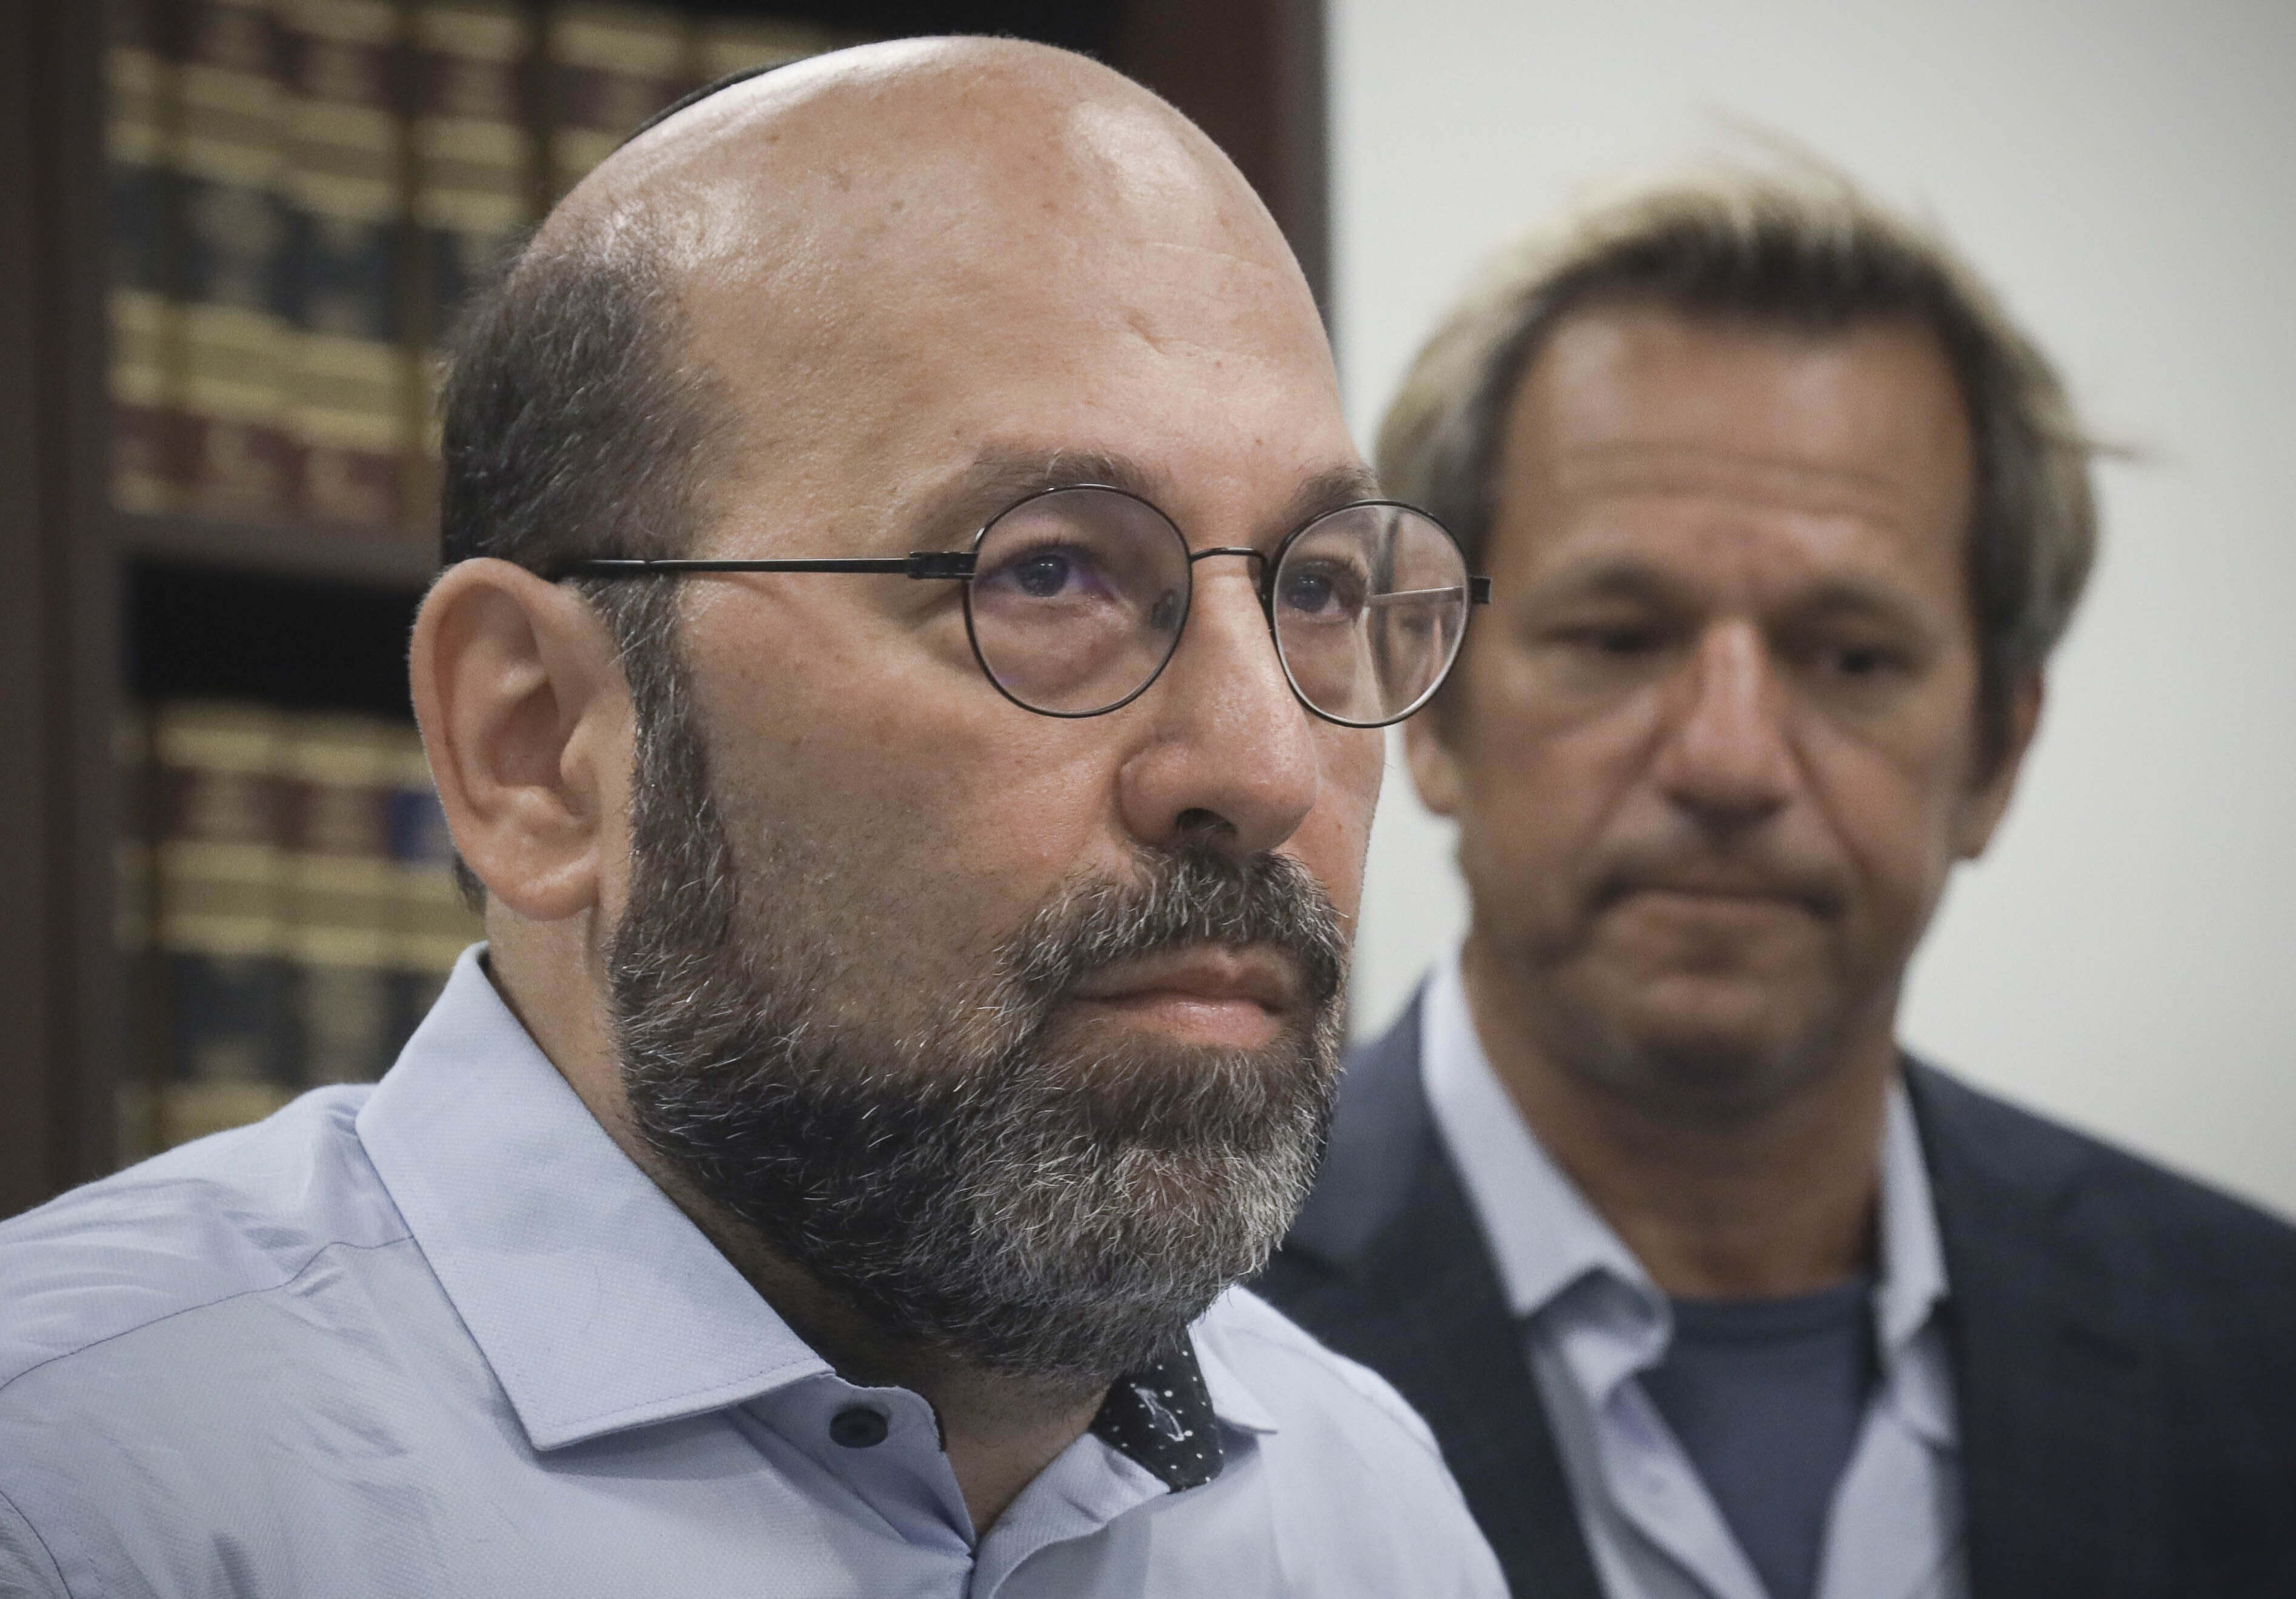 Jay Goldberg, left, and Barry Singer, right, victims who say they were sexually abused while they were students at Marsha Stern Talmudical Academy (MTA)—also known as Yeshiva University High School for Boys in Manhattan, hold a press conference, Thursday Aug. 22, 2019, in New York. They are among 38 former students in a lawsuit alleging sexual abuse by two rabbis: George Finkelstein, a long-time MTA principal, and Macy Gordon, a long-time MTA Judaic Studies teacher. (AP Photo/Bebeto Matthews)